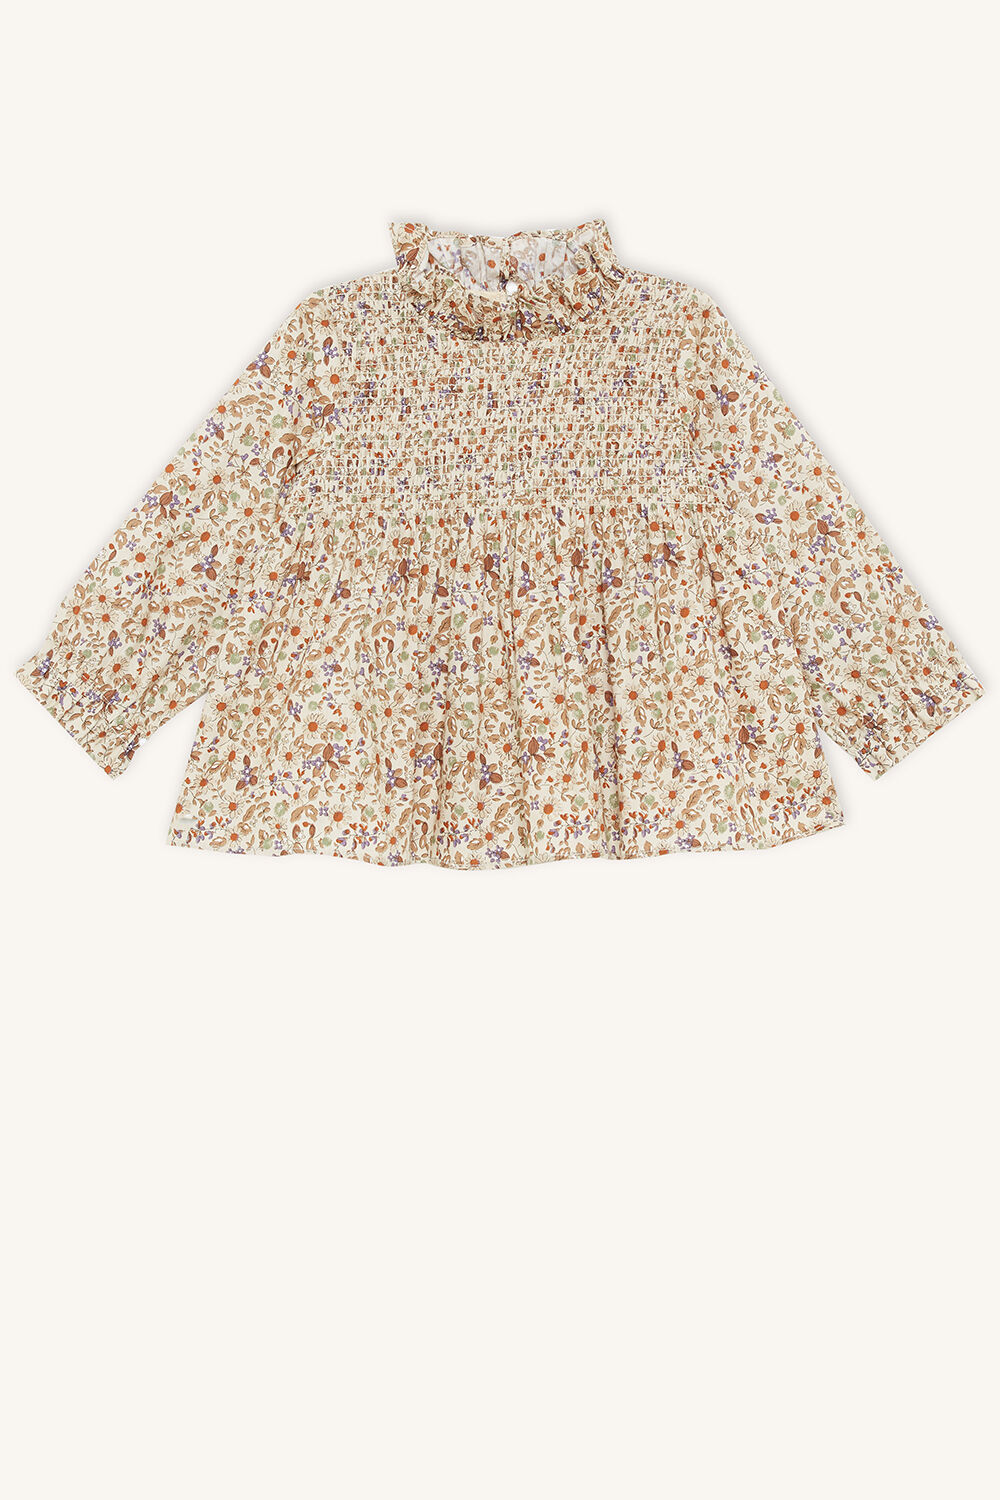 PAIGE SHIRRED TOP in colour BIRCH